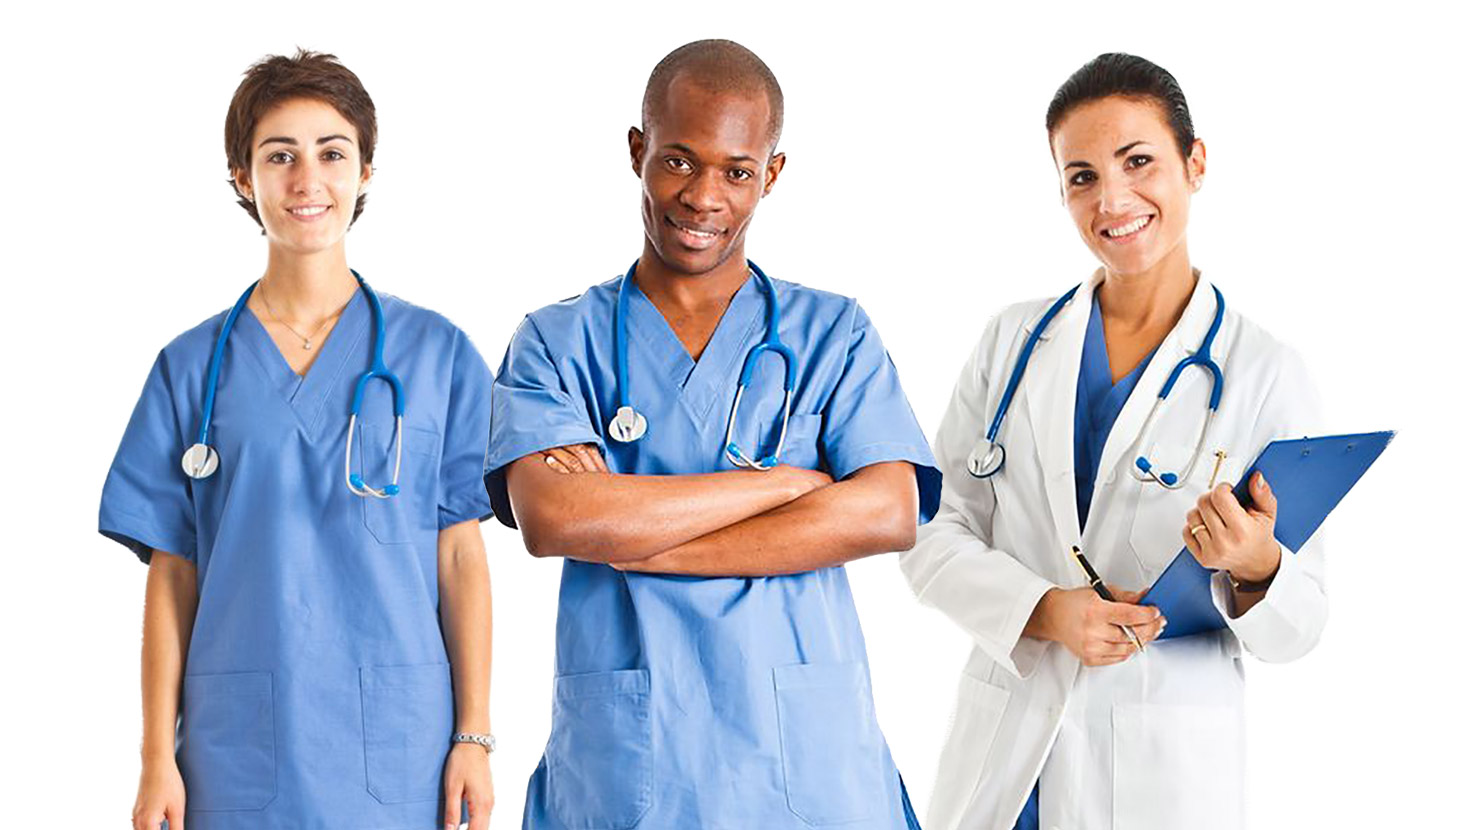 Consult Internal Medicine Experts for Good Medical Advice